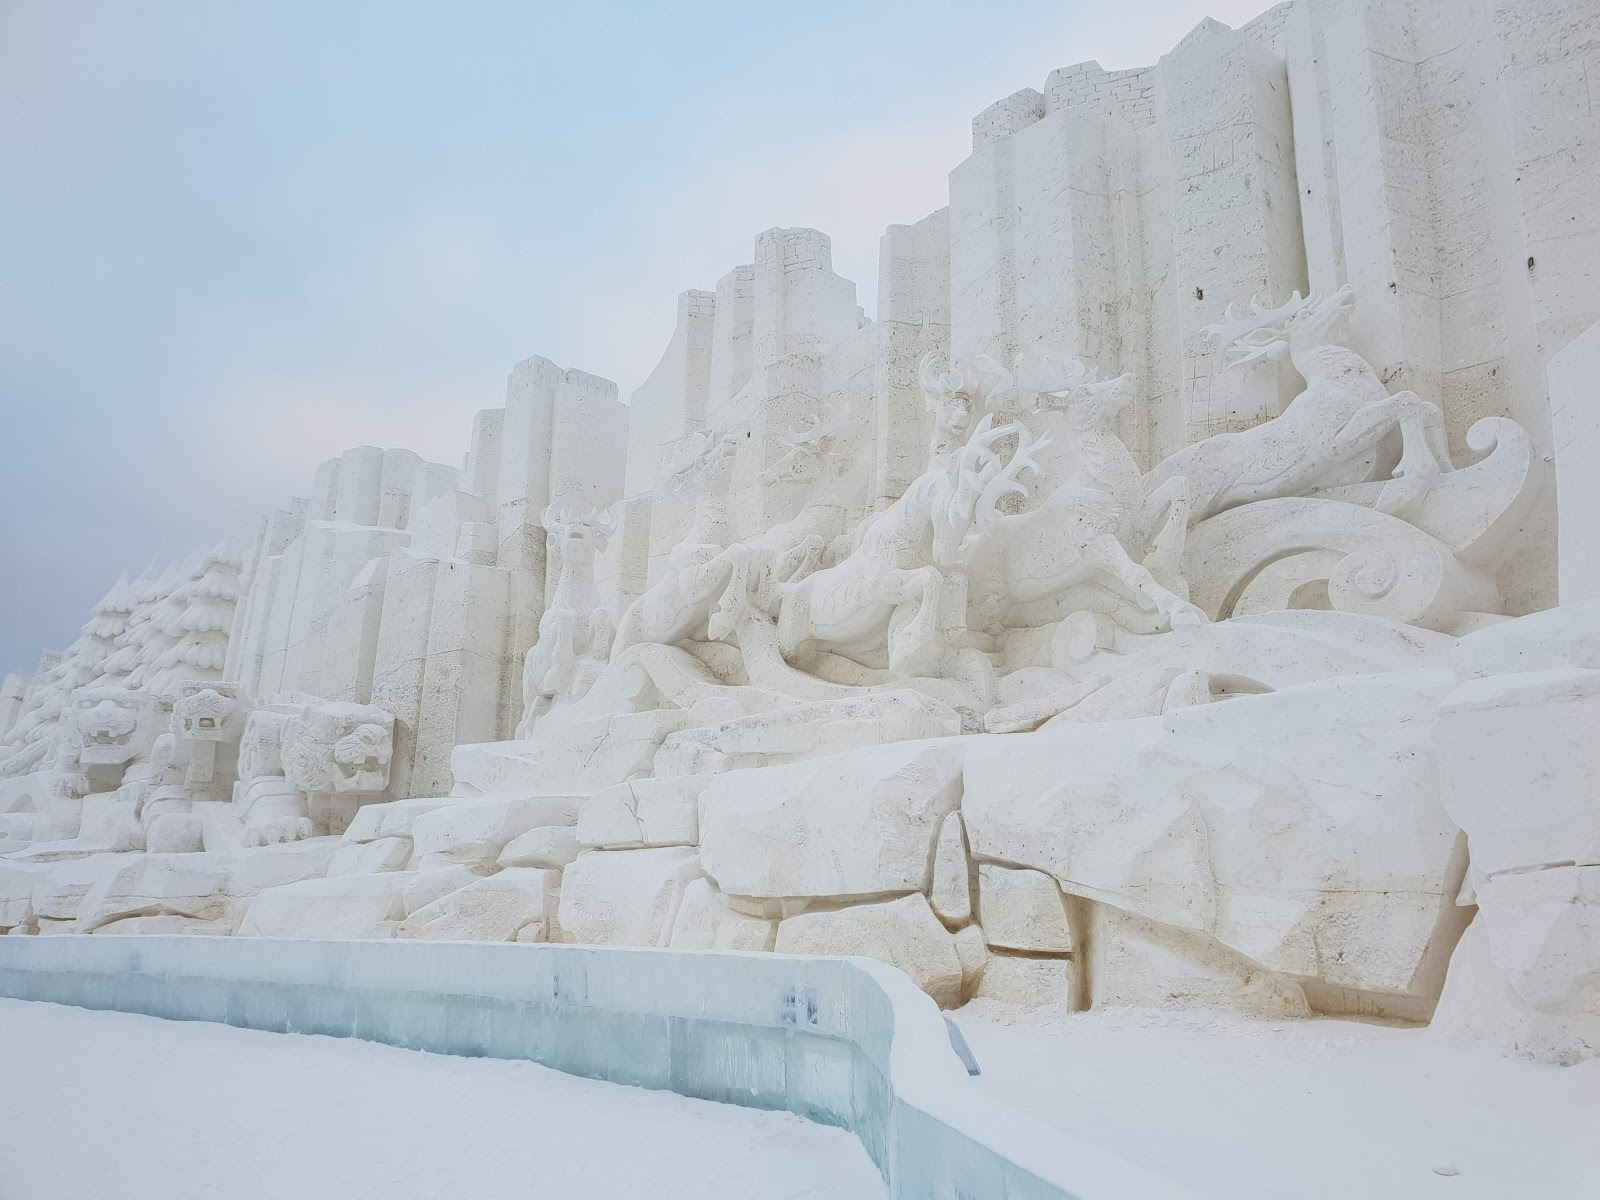 snow sculpture of deers at Harbin Ice and Snow Festival